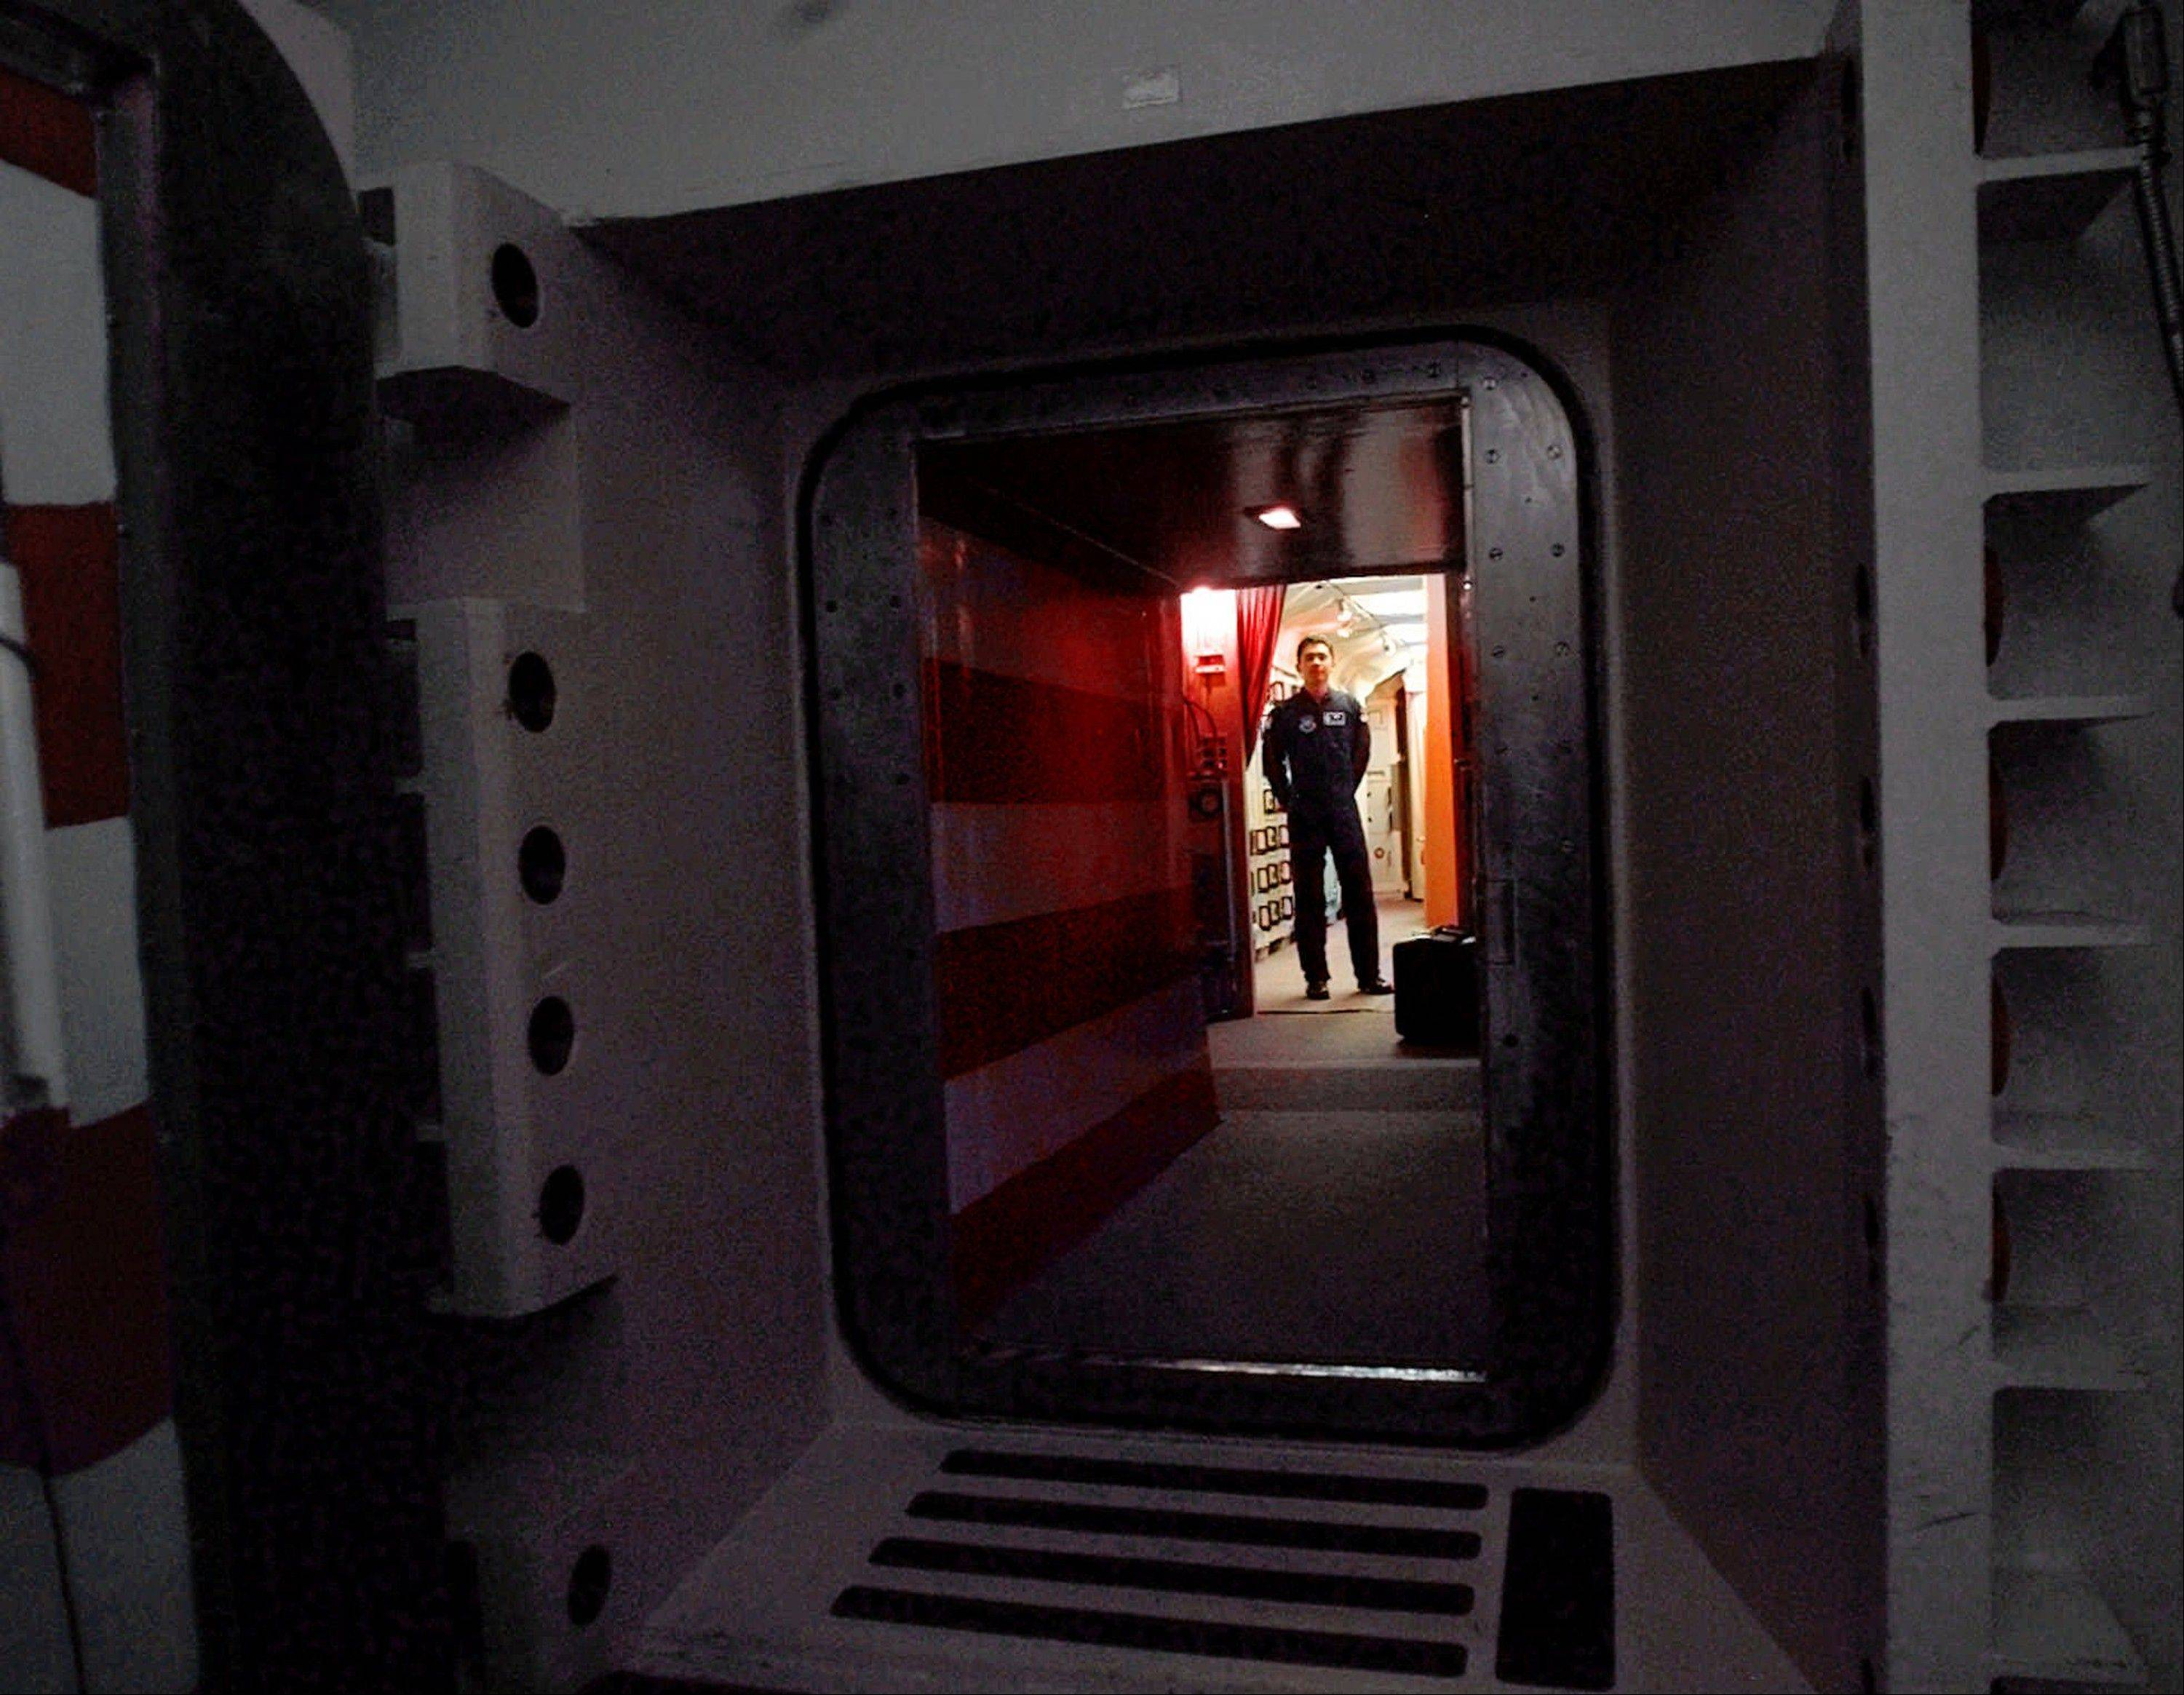 An Air Force missile crew commander stand at the door of his launch capsule 100-feet underground, where he and his partner are responsible for 10 nuclear-armed ICBM's, in north-central Colorado.